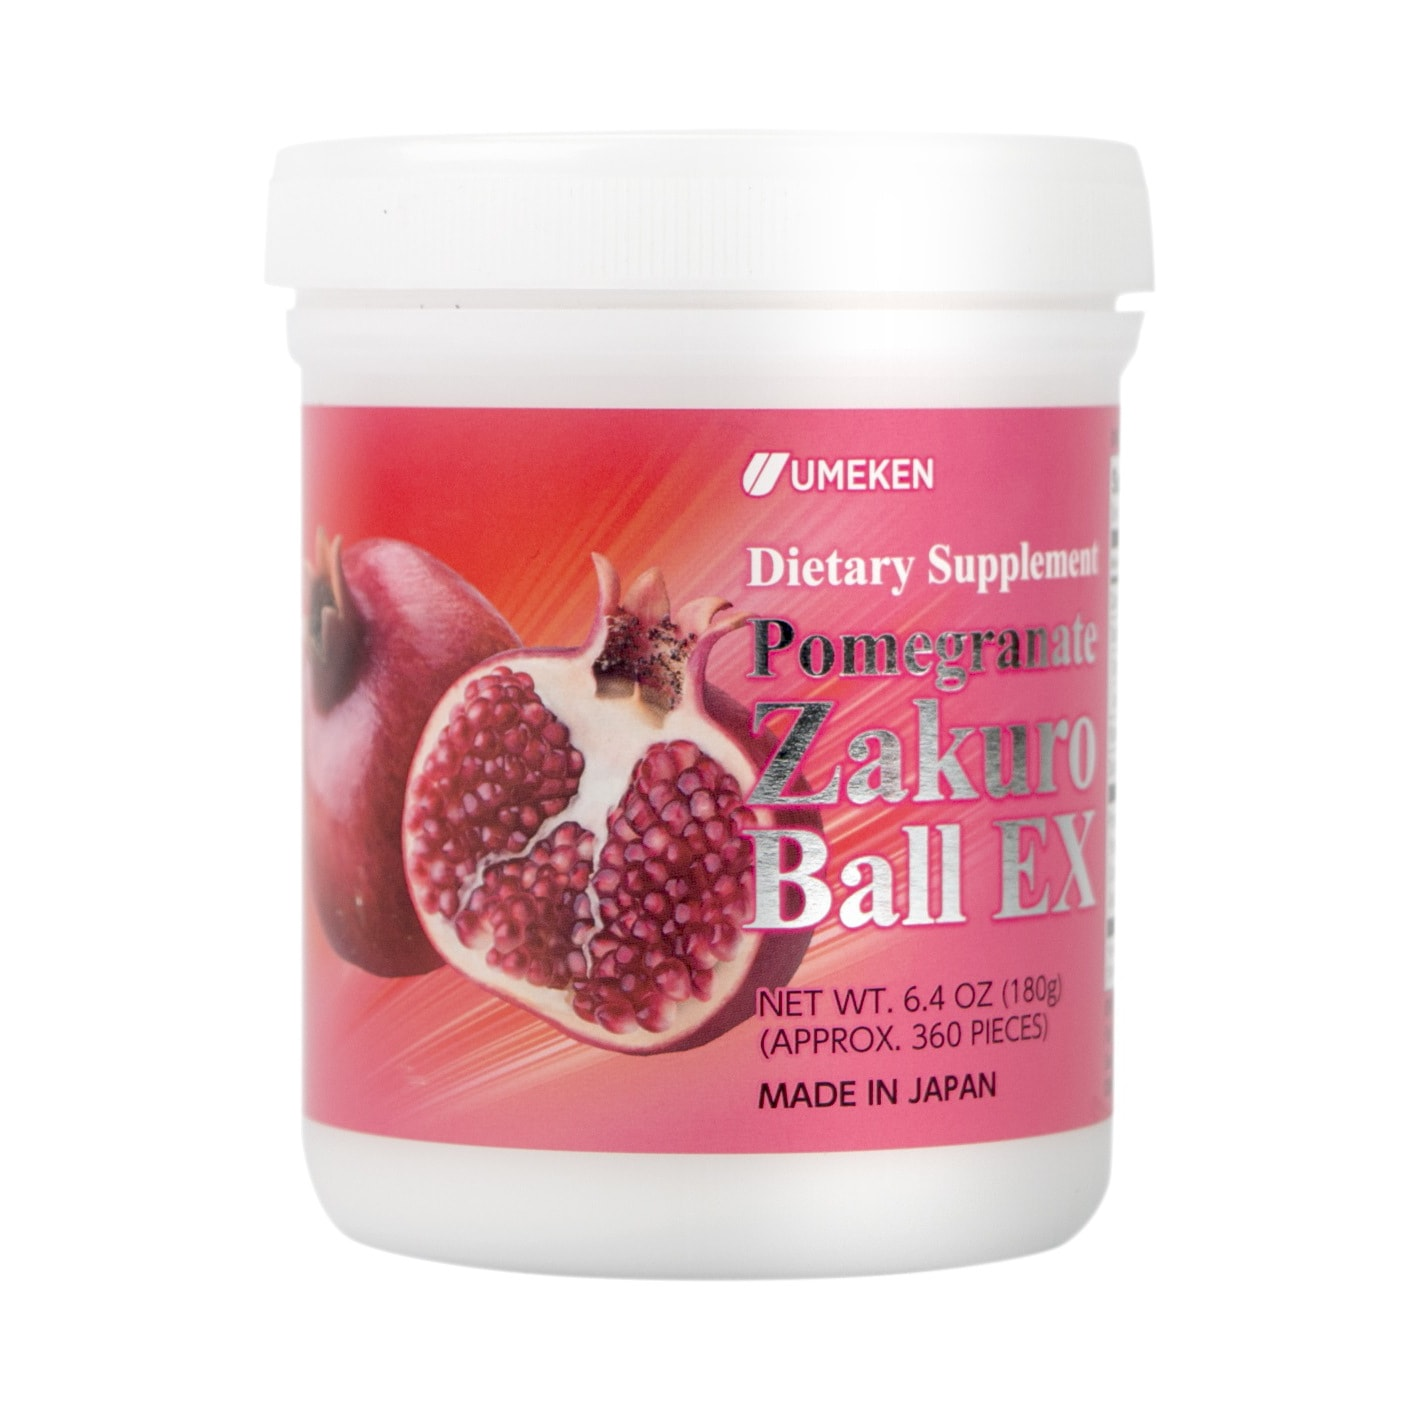 Yamibuy.com:Customer reviews:UMEKEN Pomegranate Zakuro Ball EX 360 Balls/ 2 Months Supply